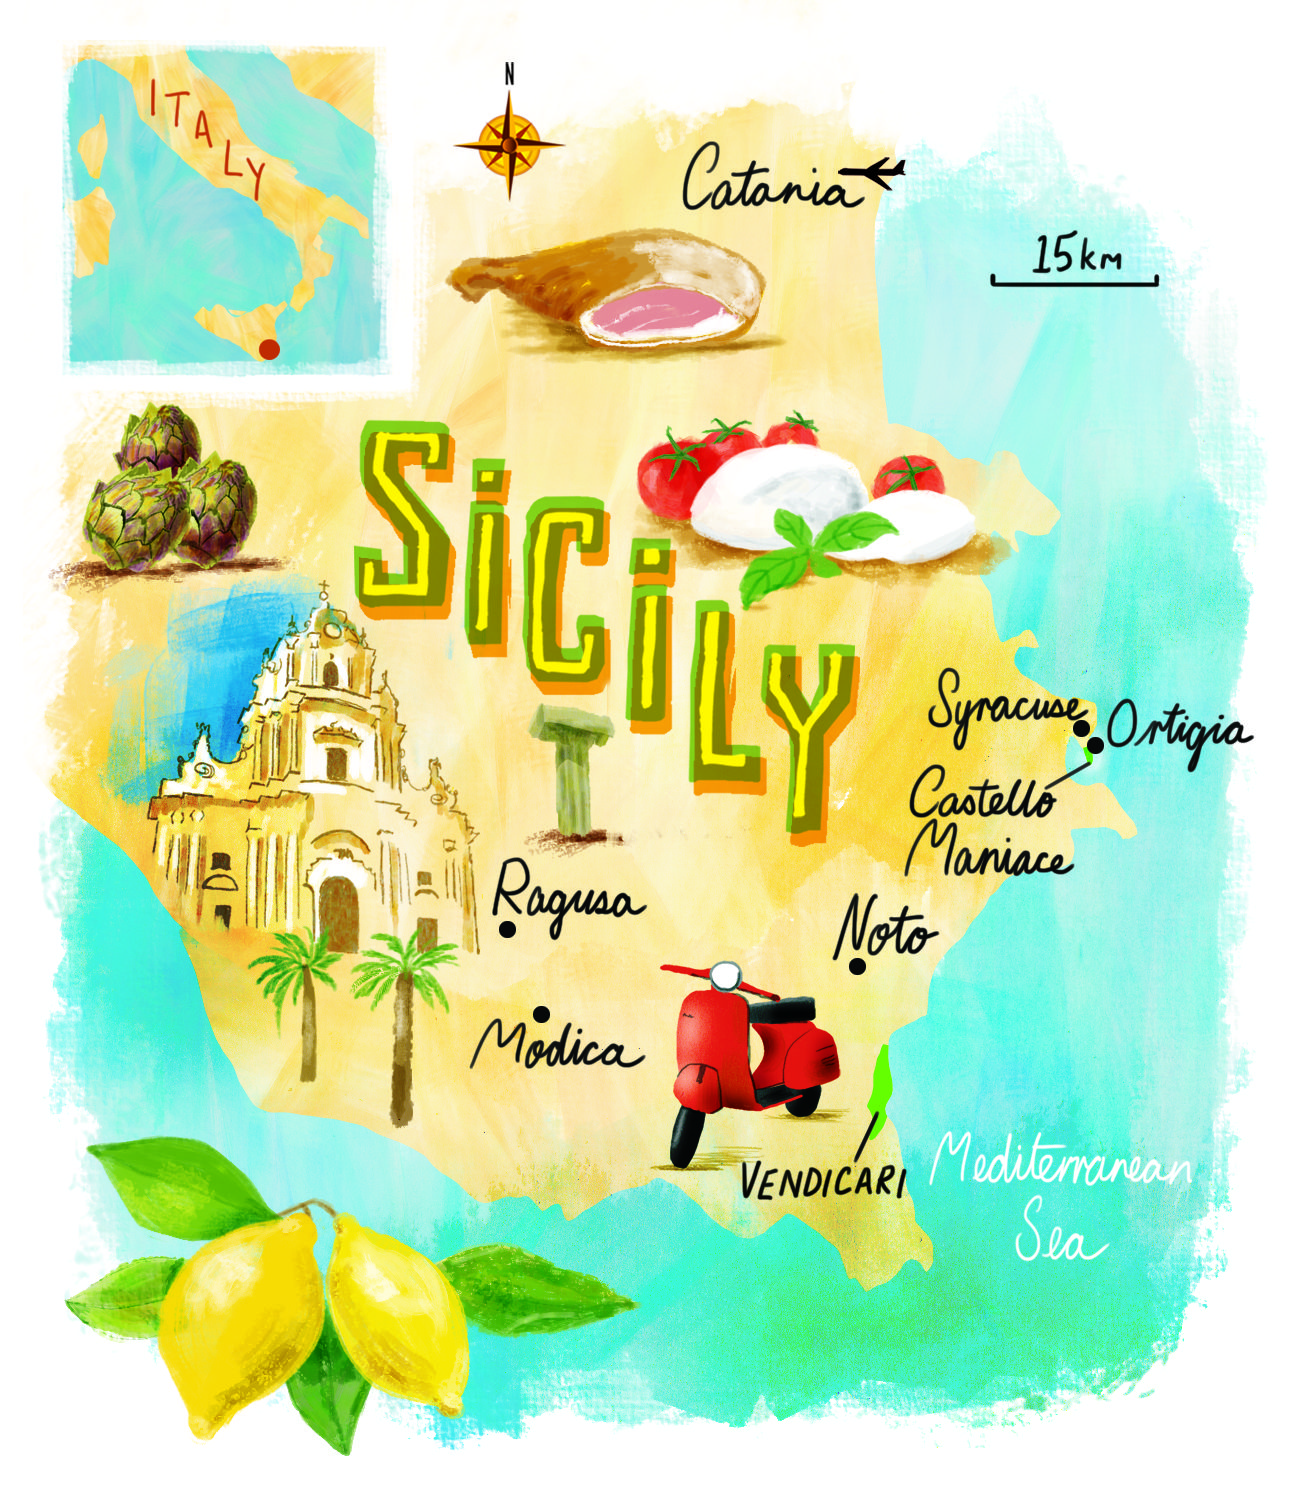 South East Sicily Map By Scott Jessop Map Sicily Italy - Syracuse map italy